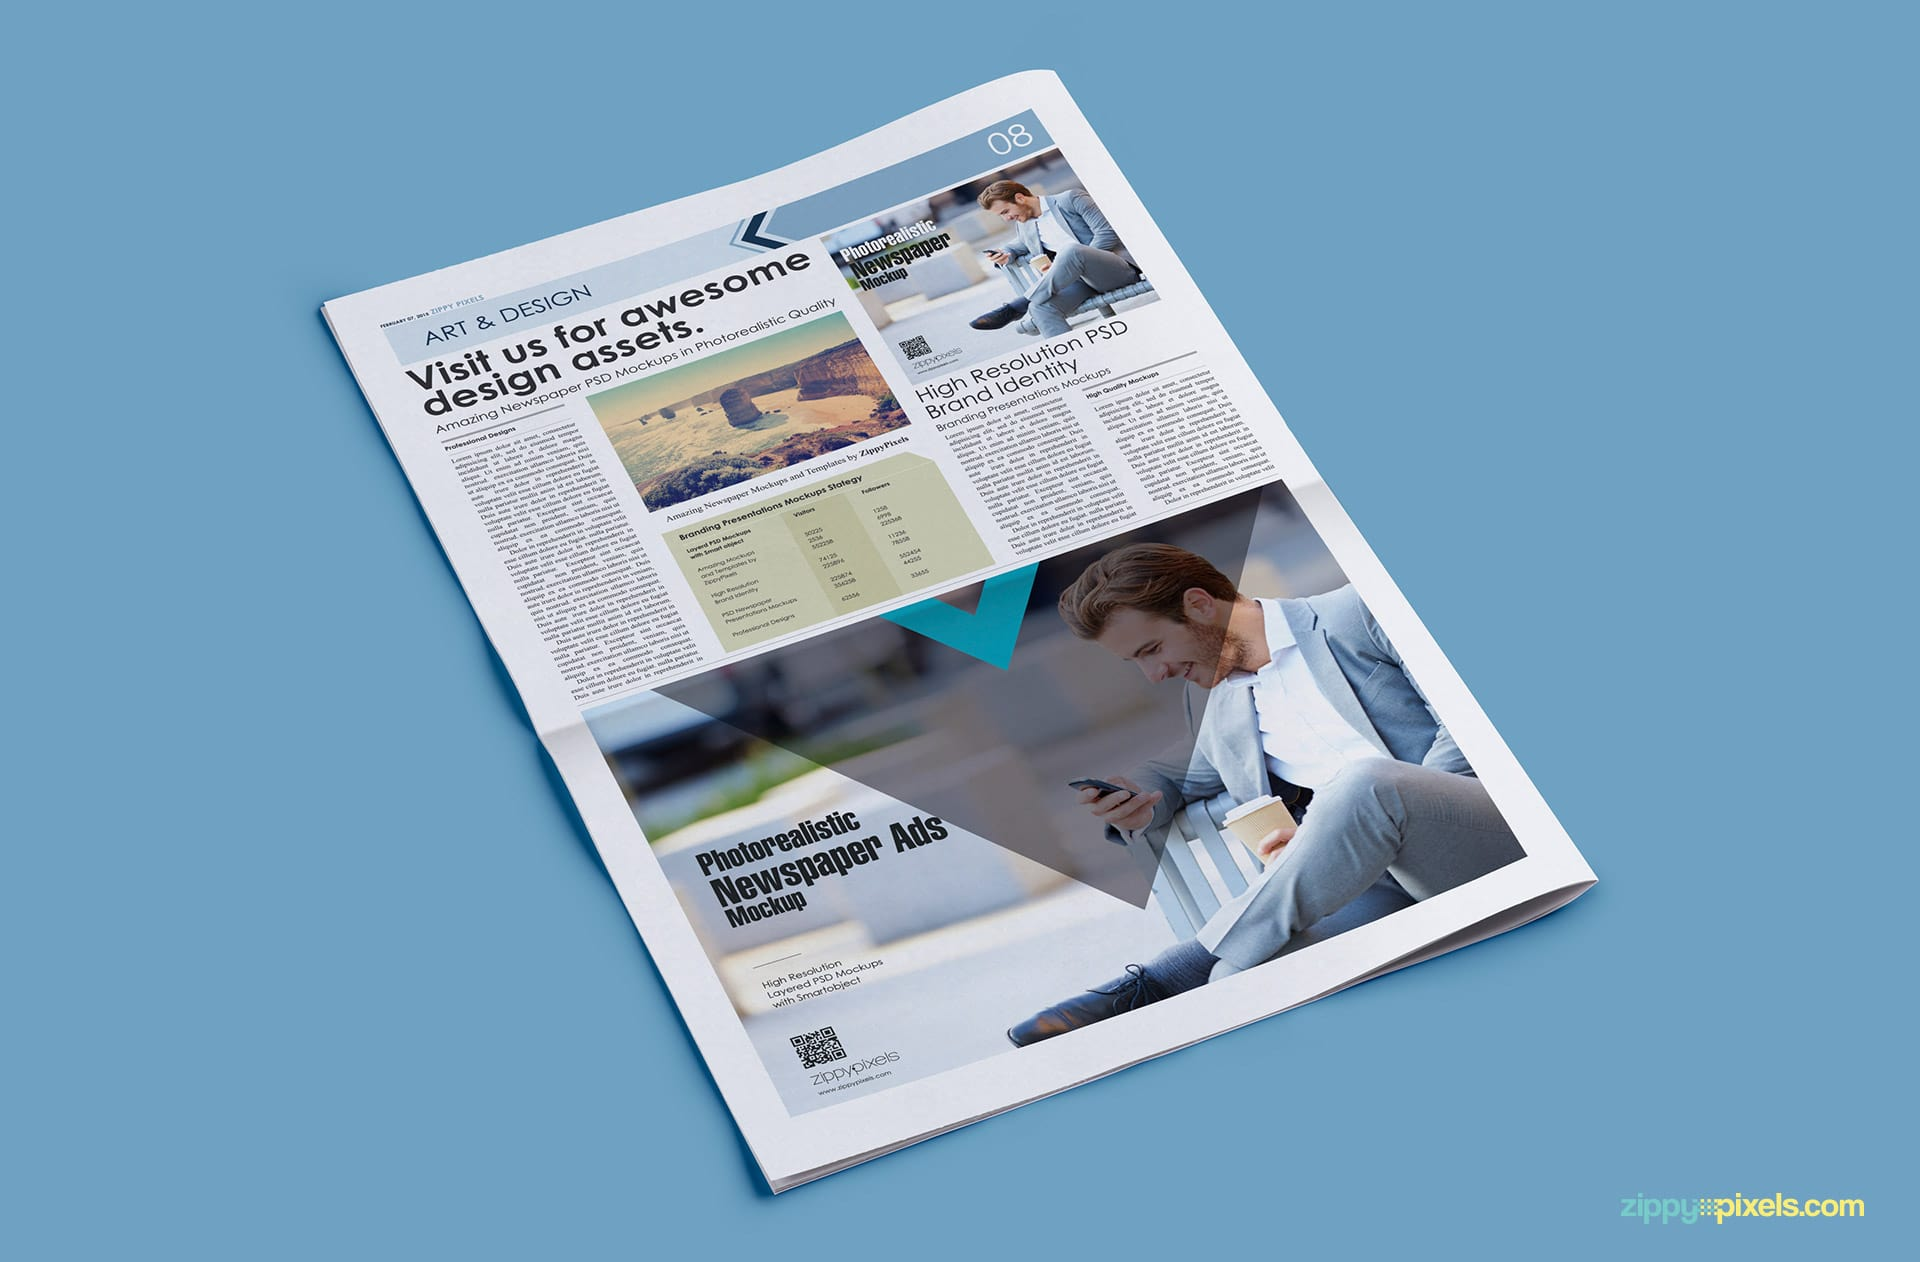 PSD mockups showing tabloid newspaper with half page horizontal ad